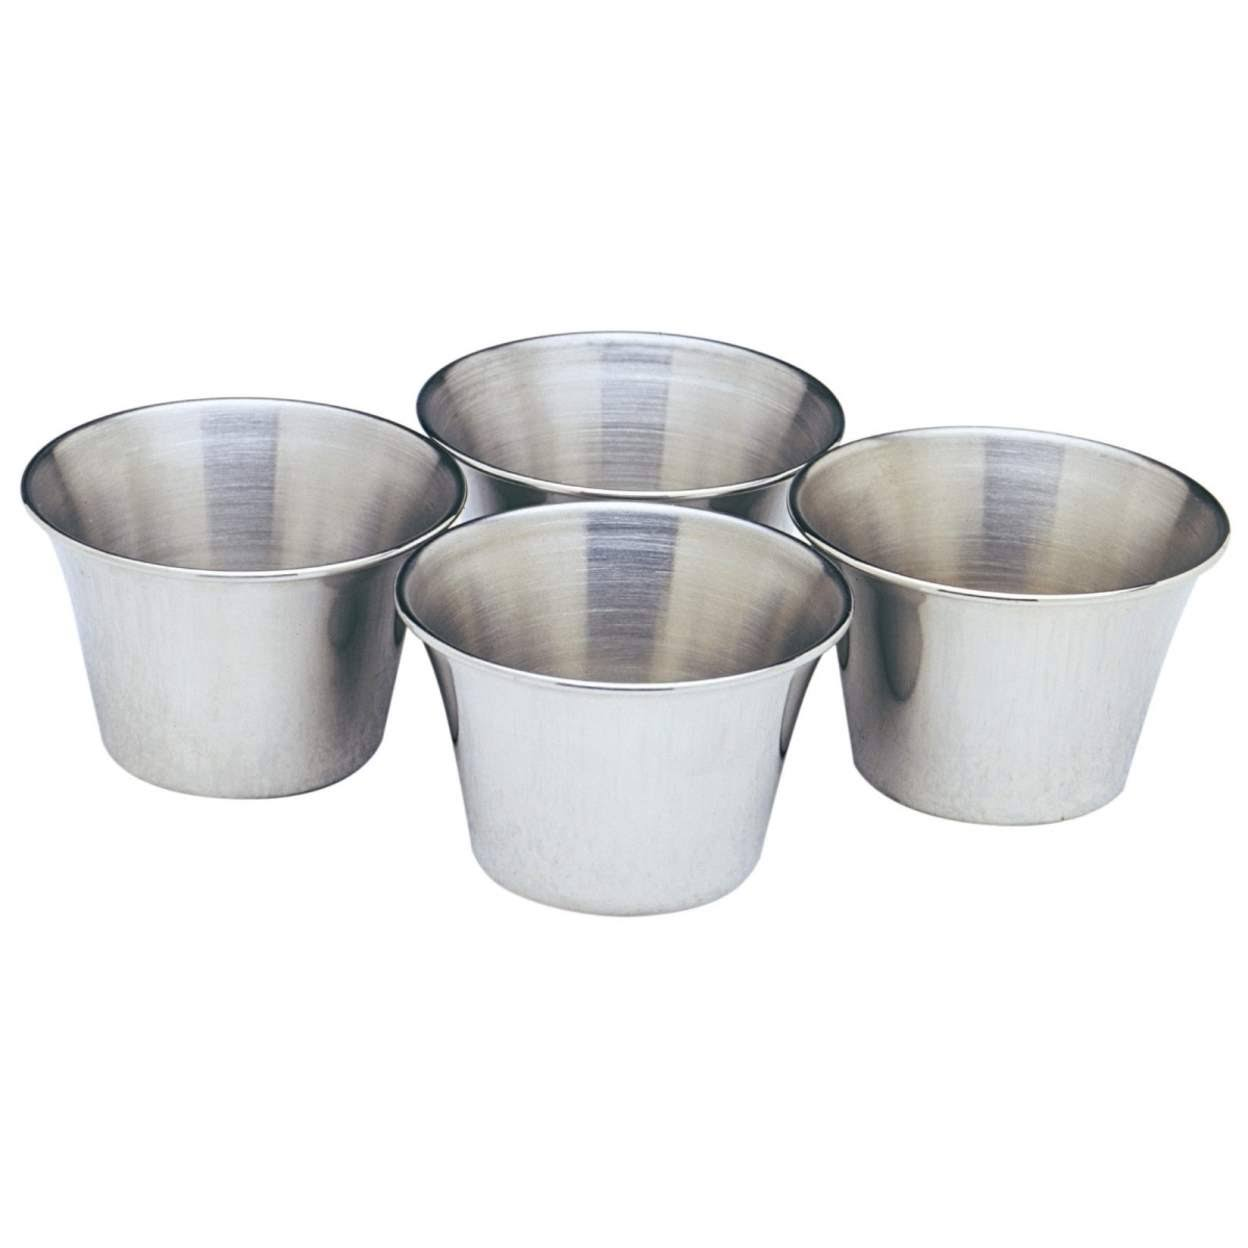 Norpro 208 Stainless Steel Sauce Cups - 4ct